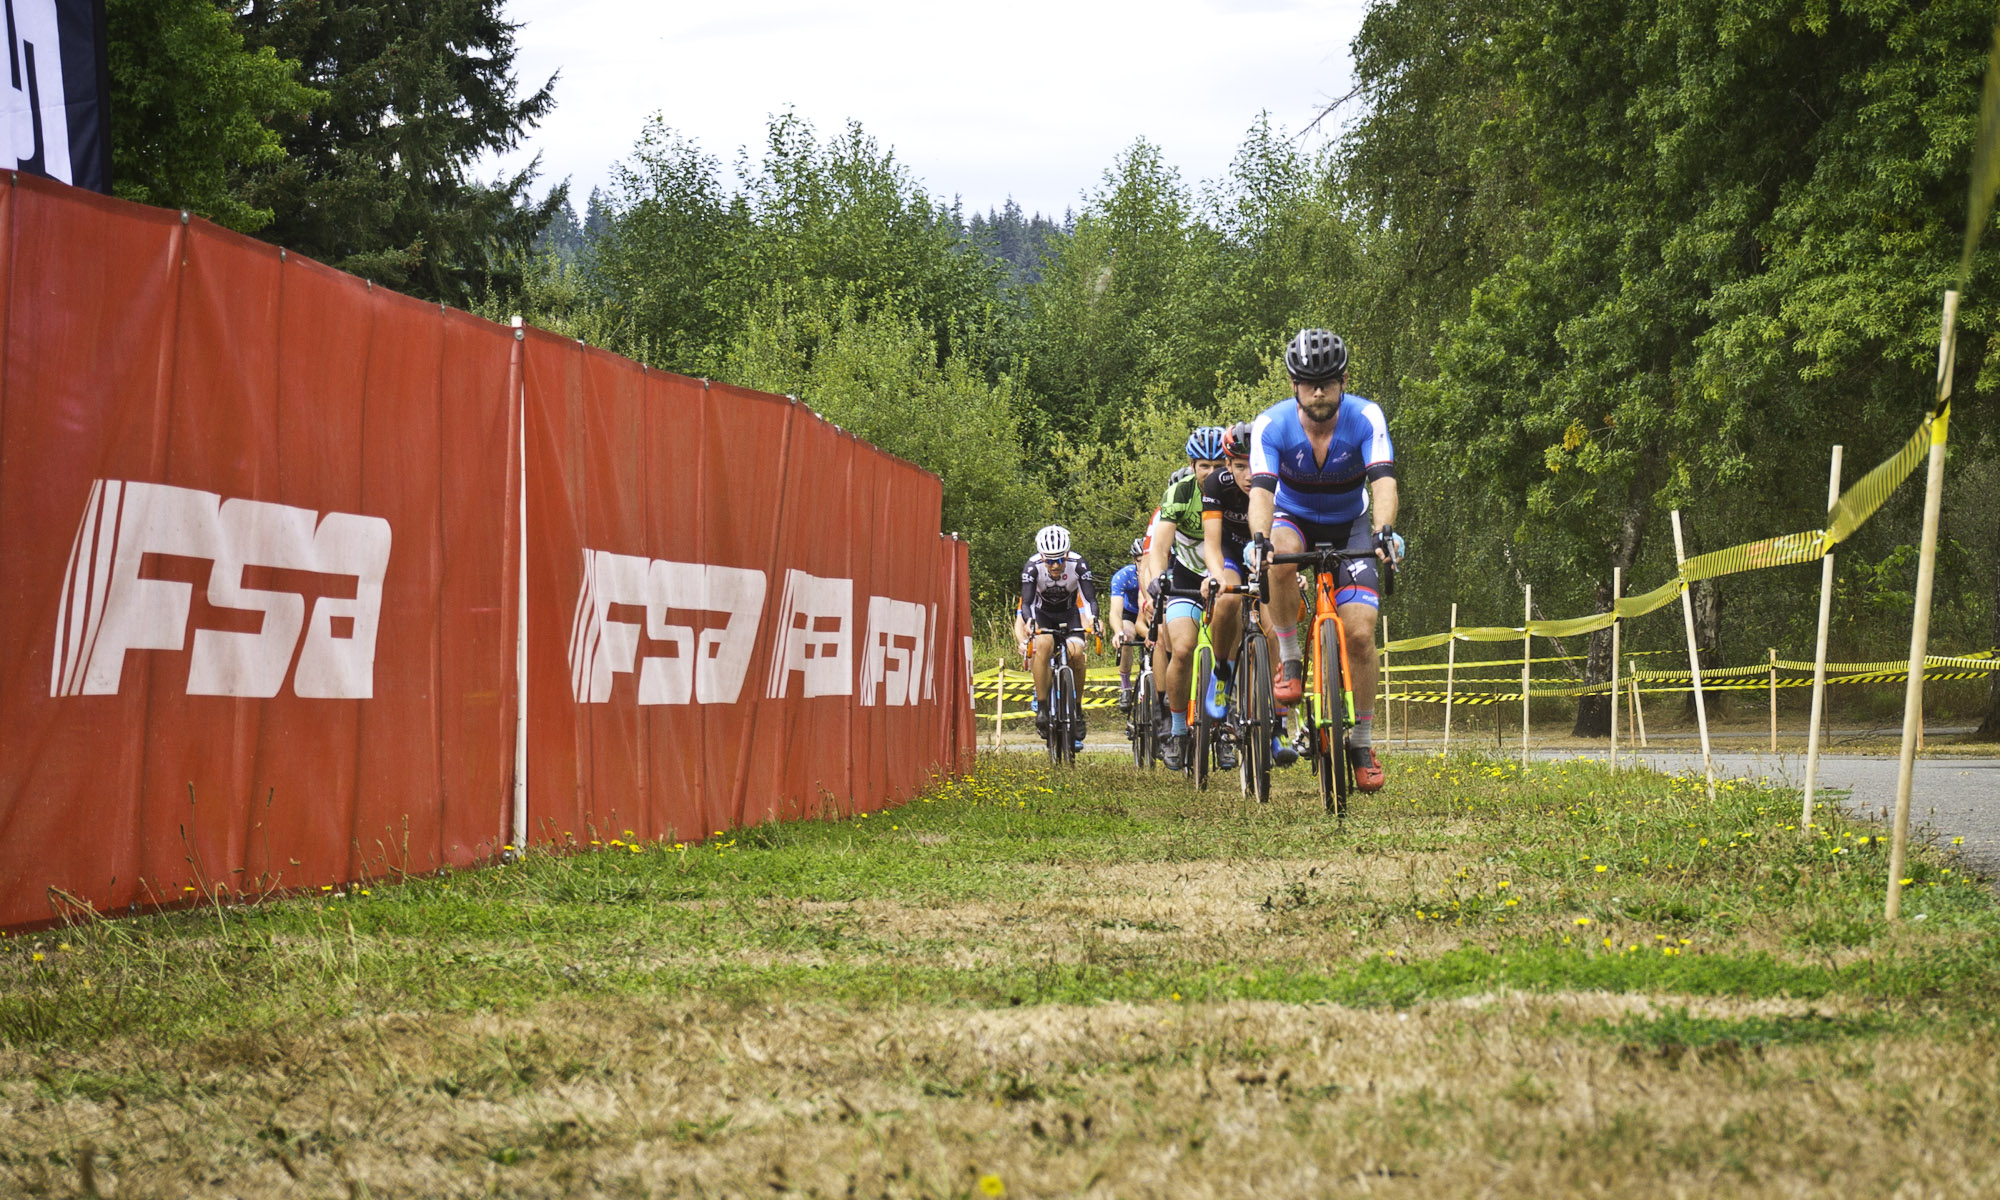 Cyclocross racers on grass course